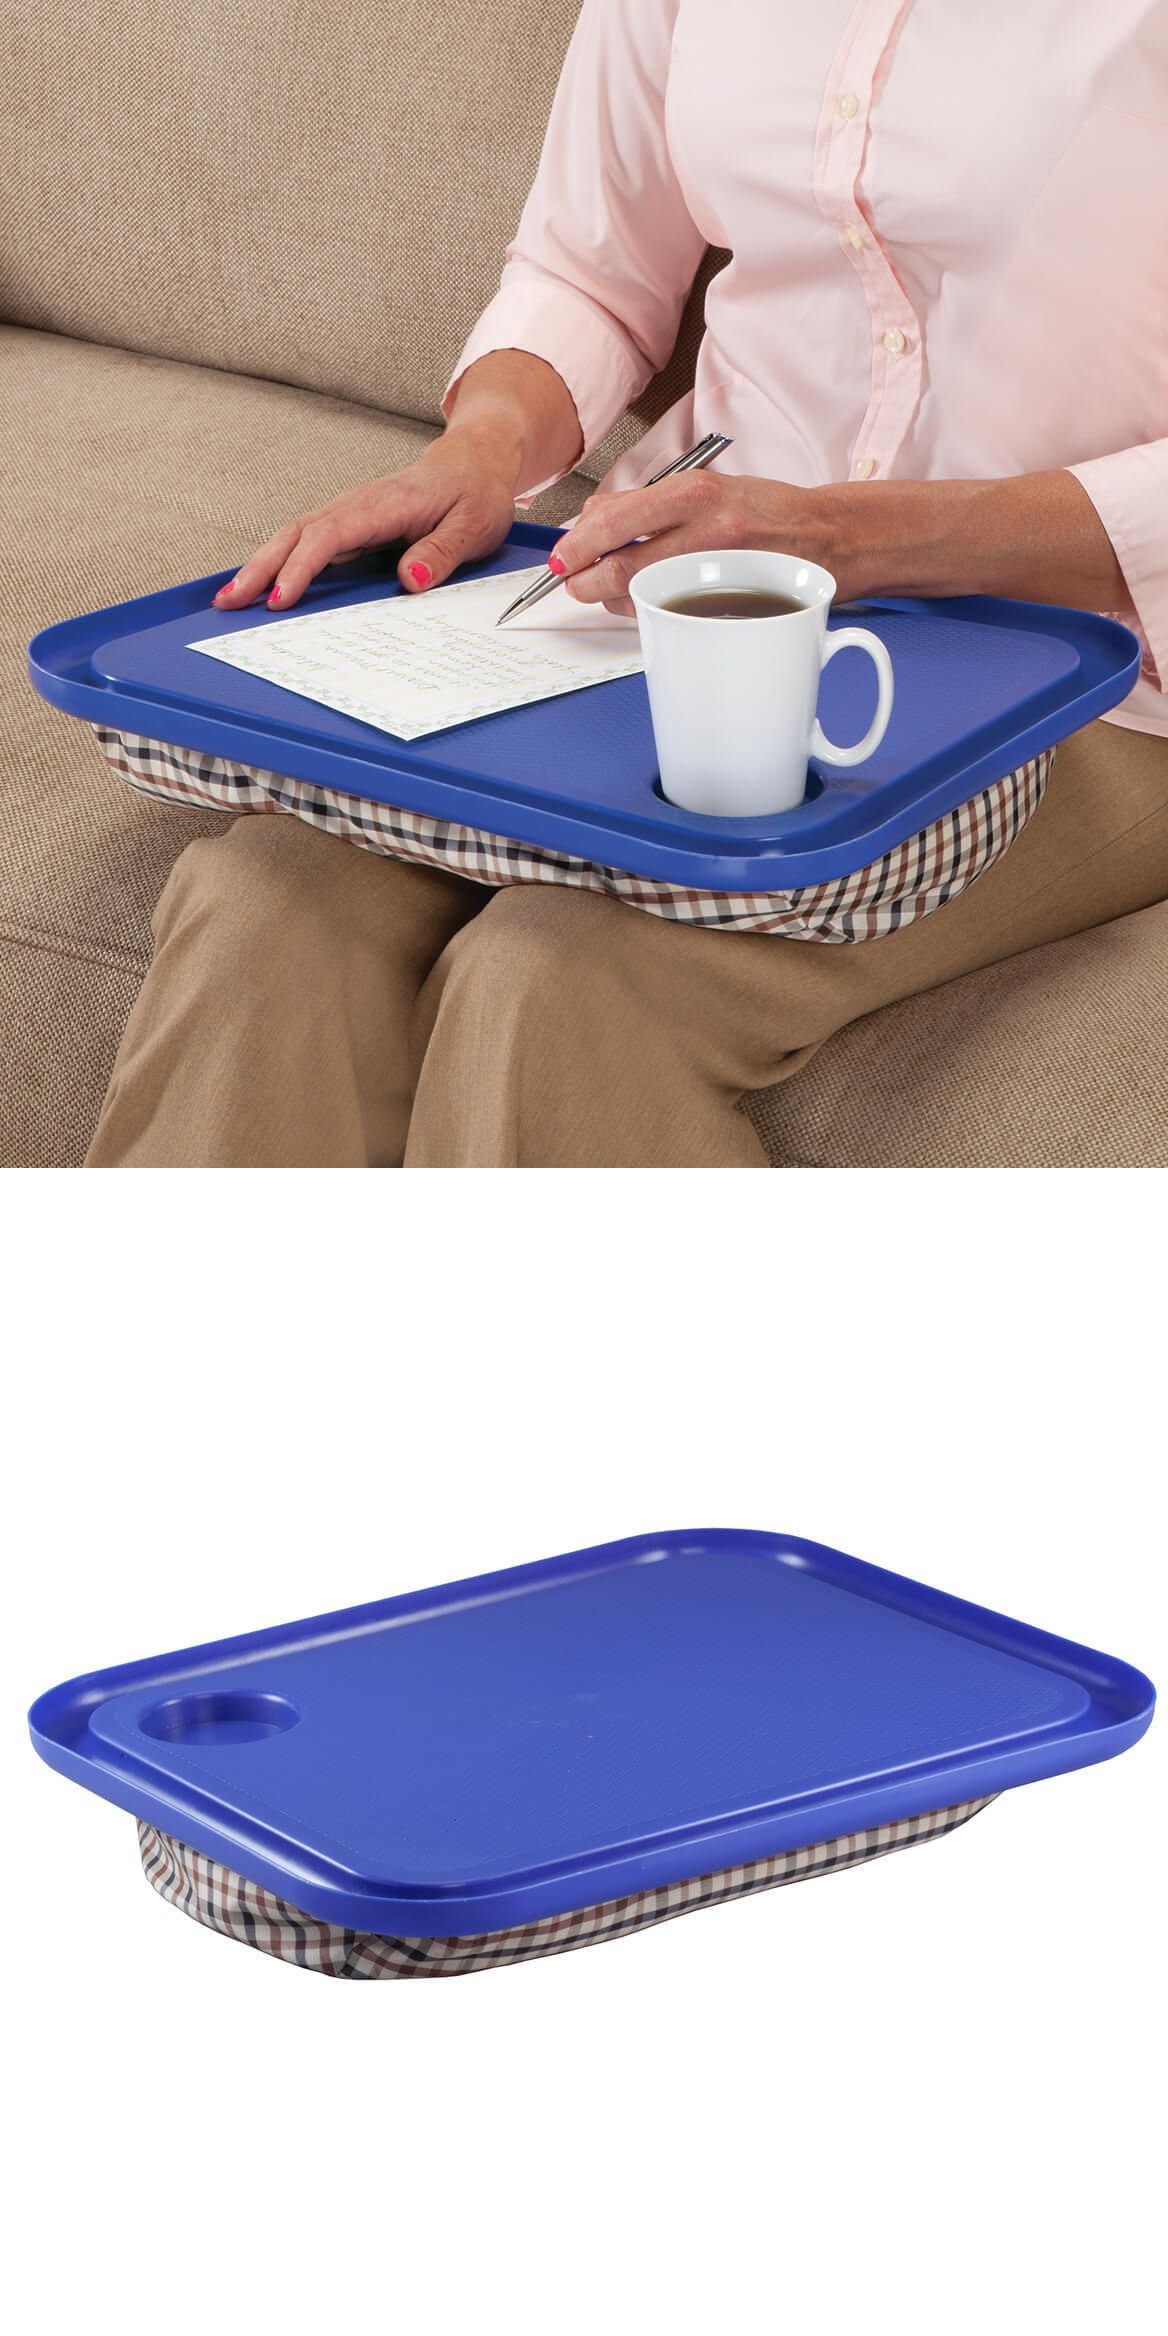 Other Laptop And Desktop Accs 31534 Snack Tray Desk Lap Table W Cup Holder Portable Stable Cushioned Beanbag Support Buy It Now Only Lap Table Lap Bean Bag